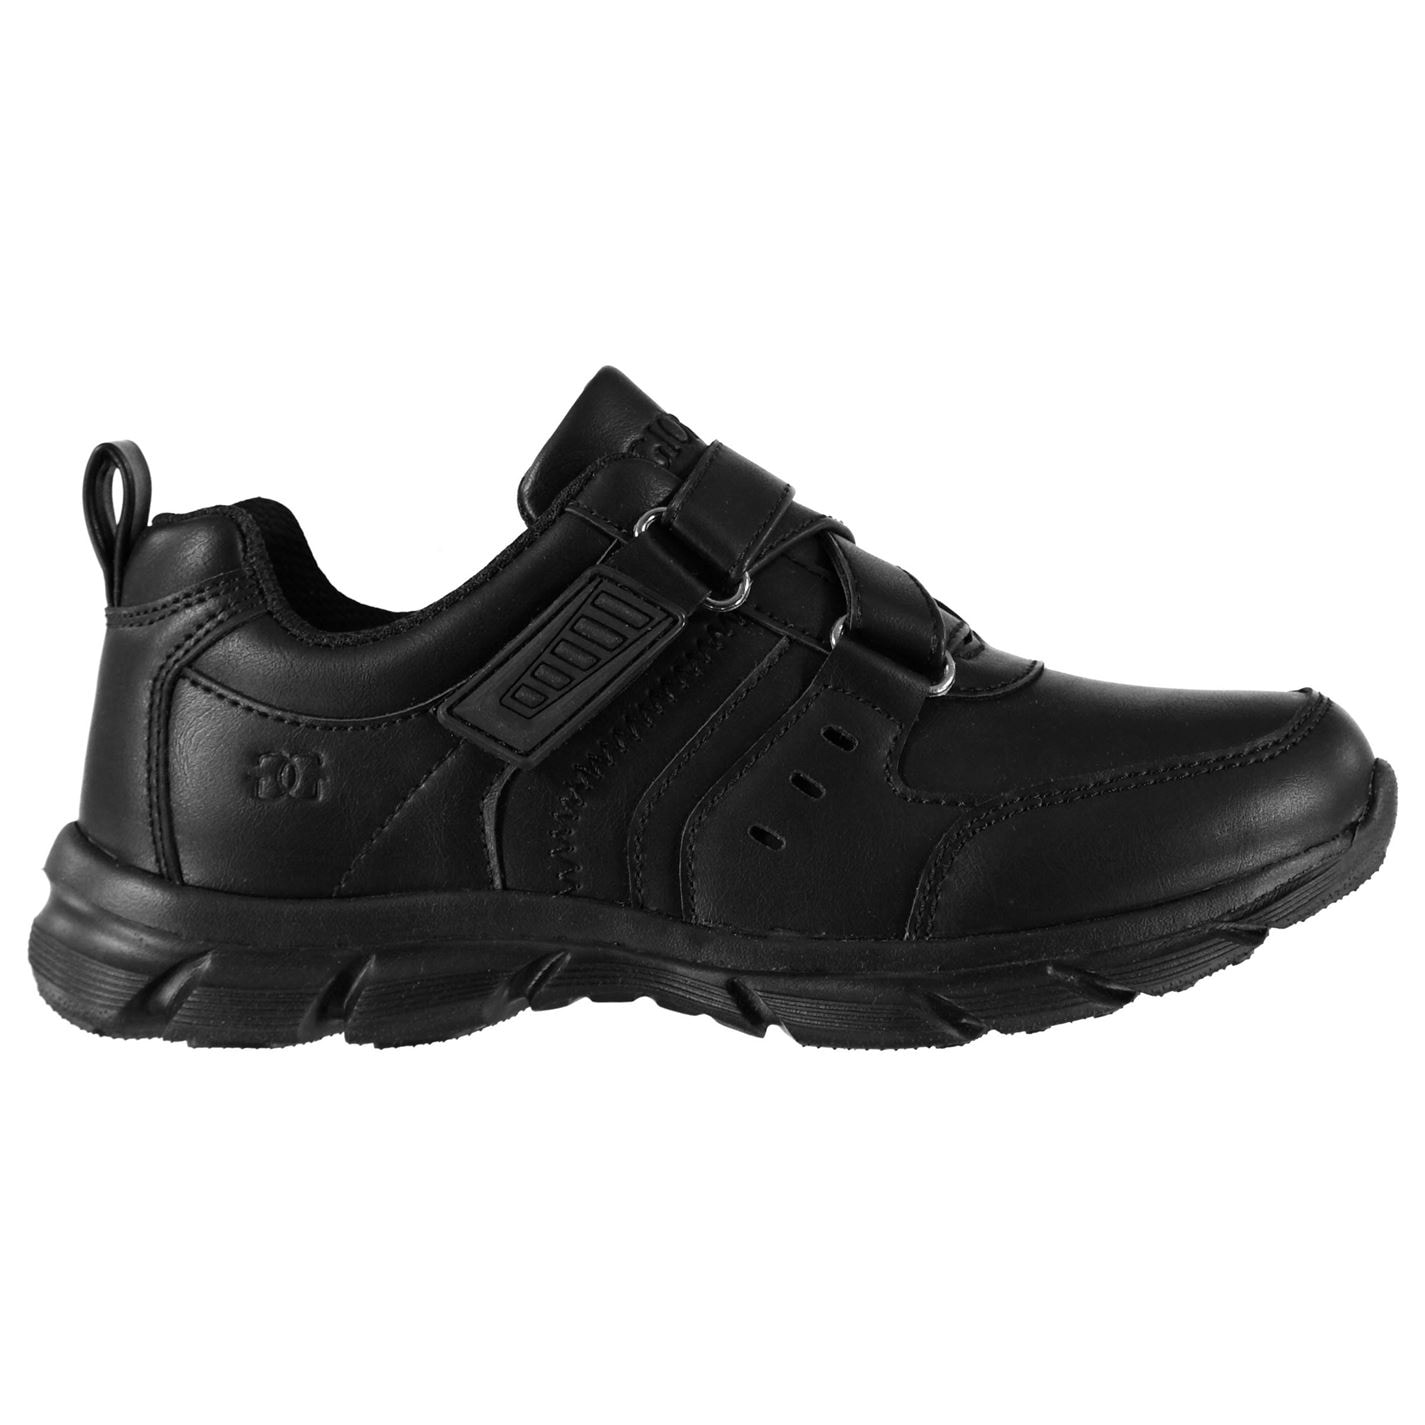 Giorgio Strap Boys Shoes Black